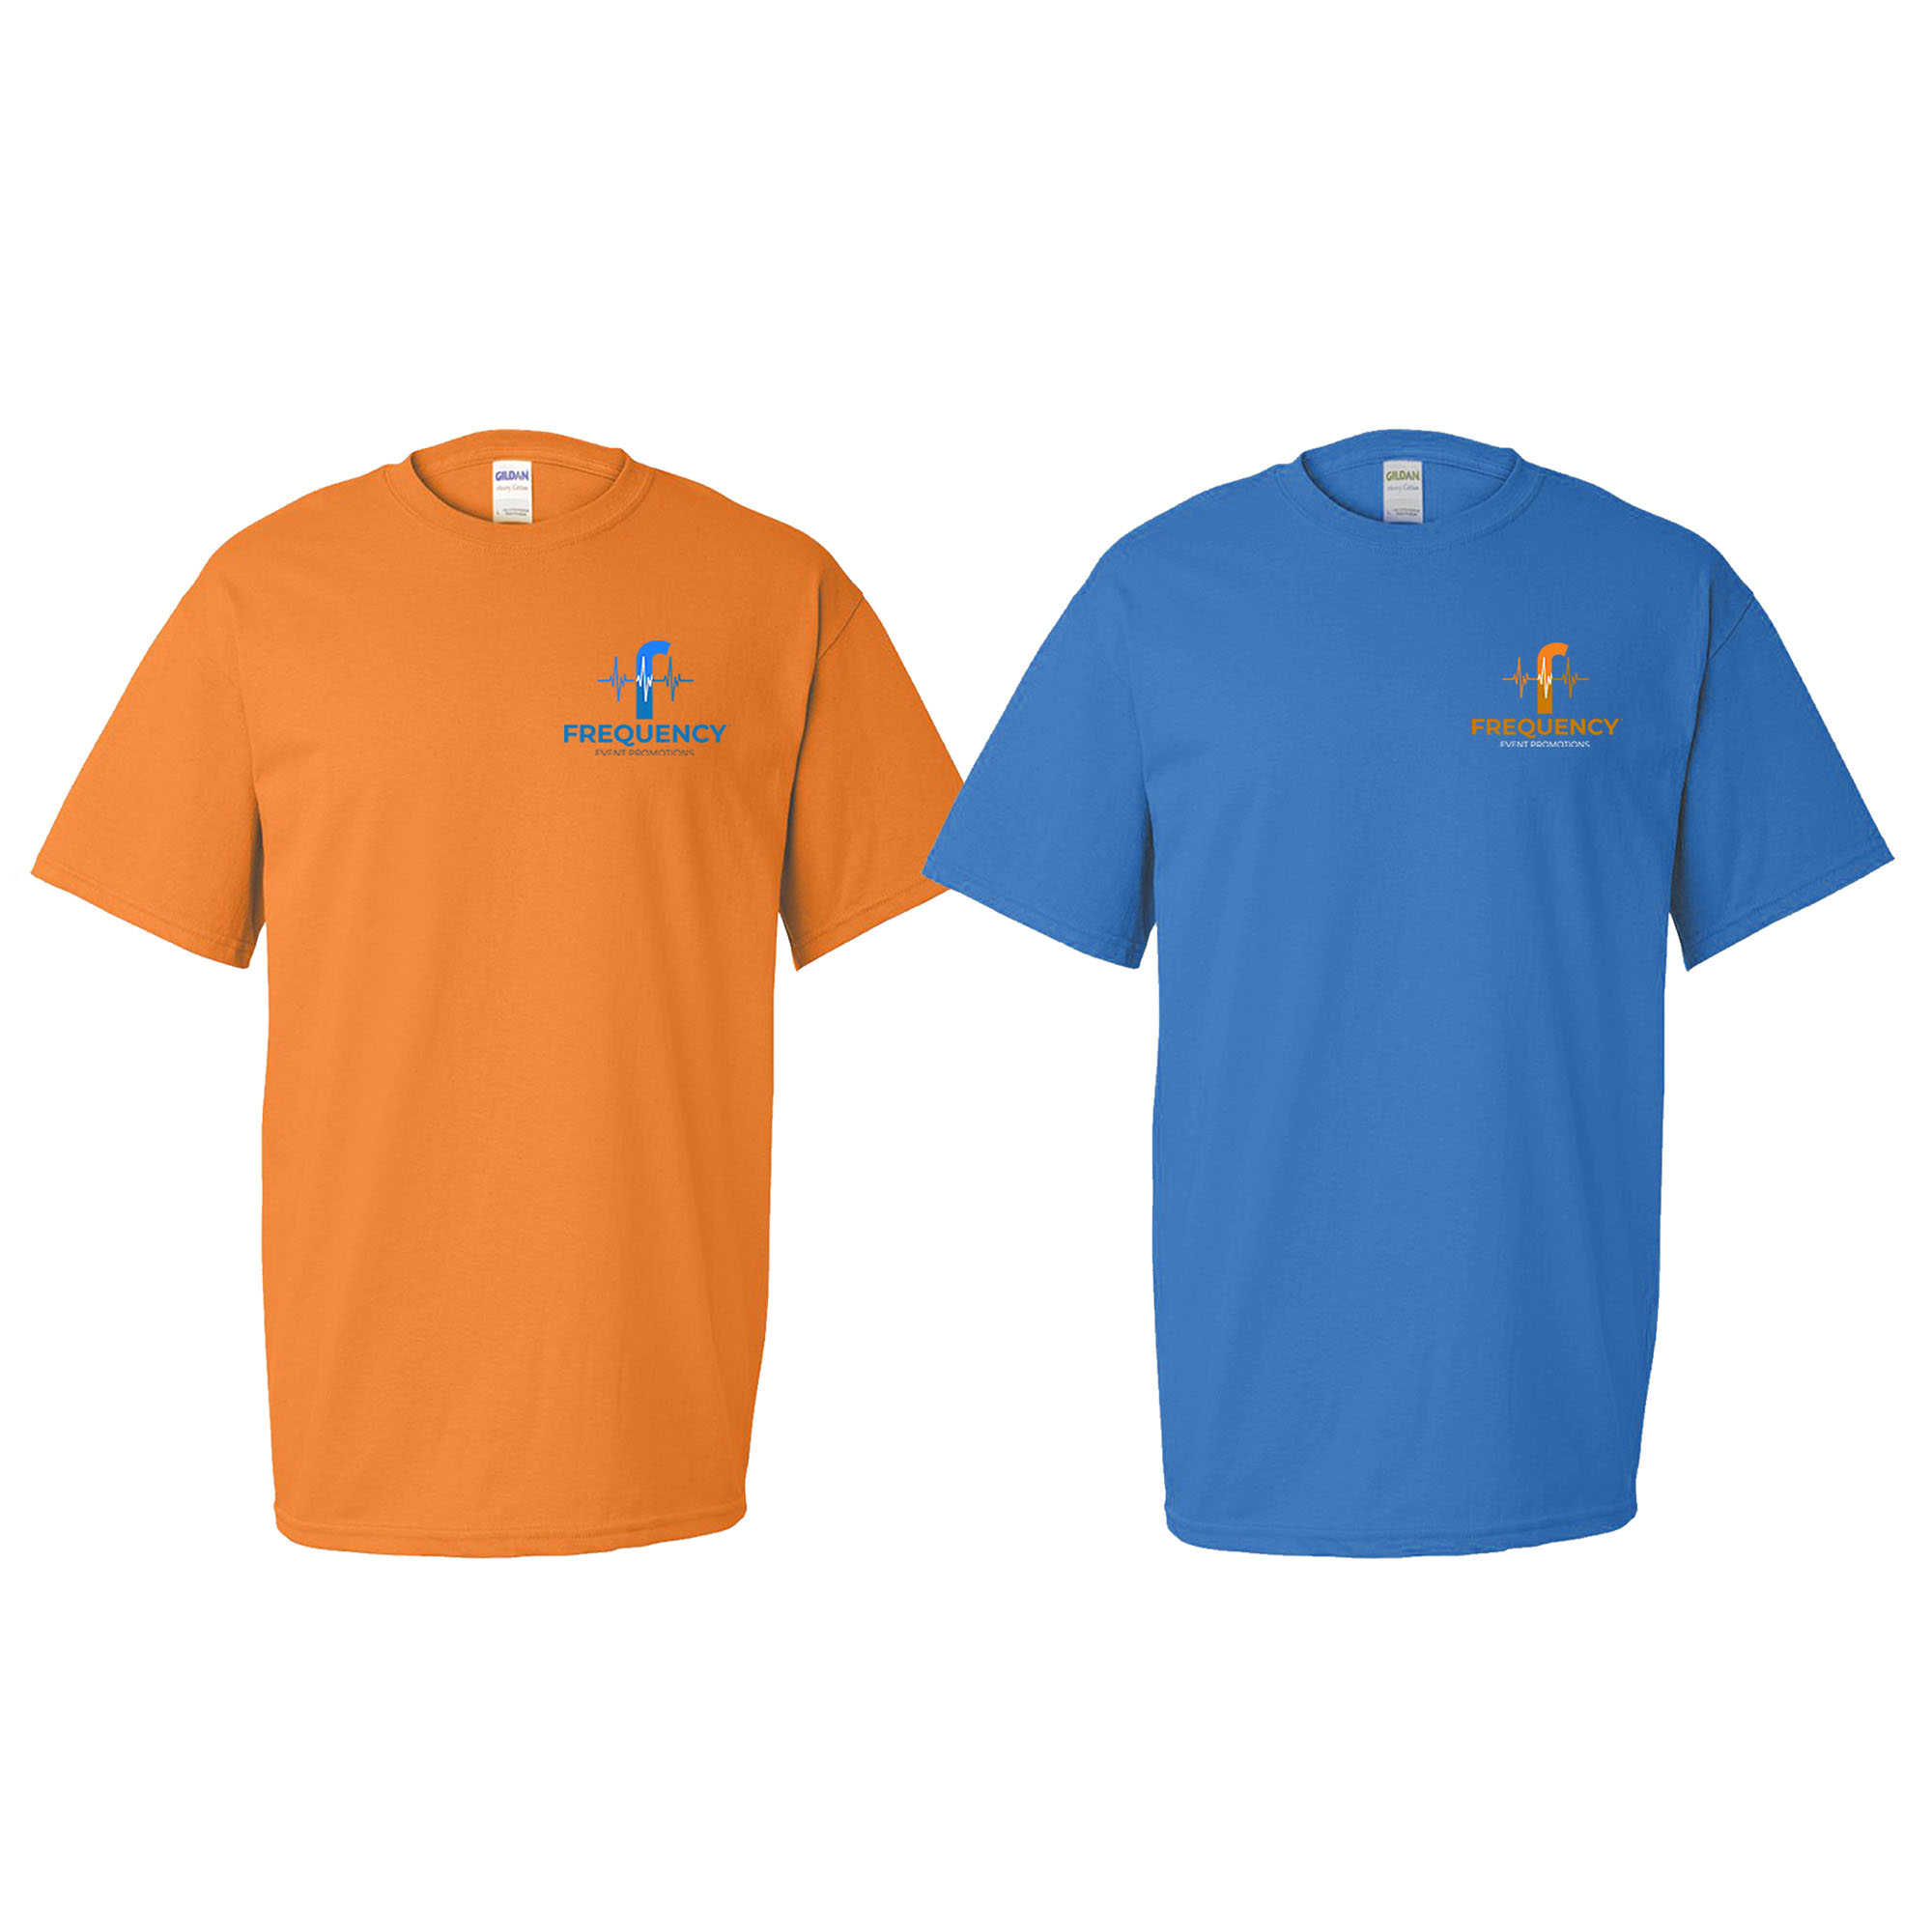 Frequency Event Promotions - Adult T-Shirts